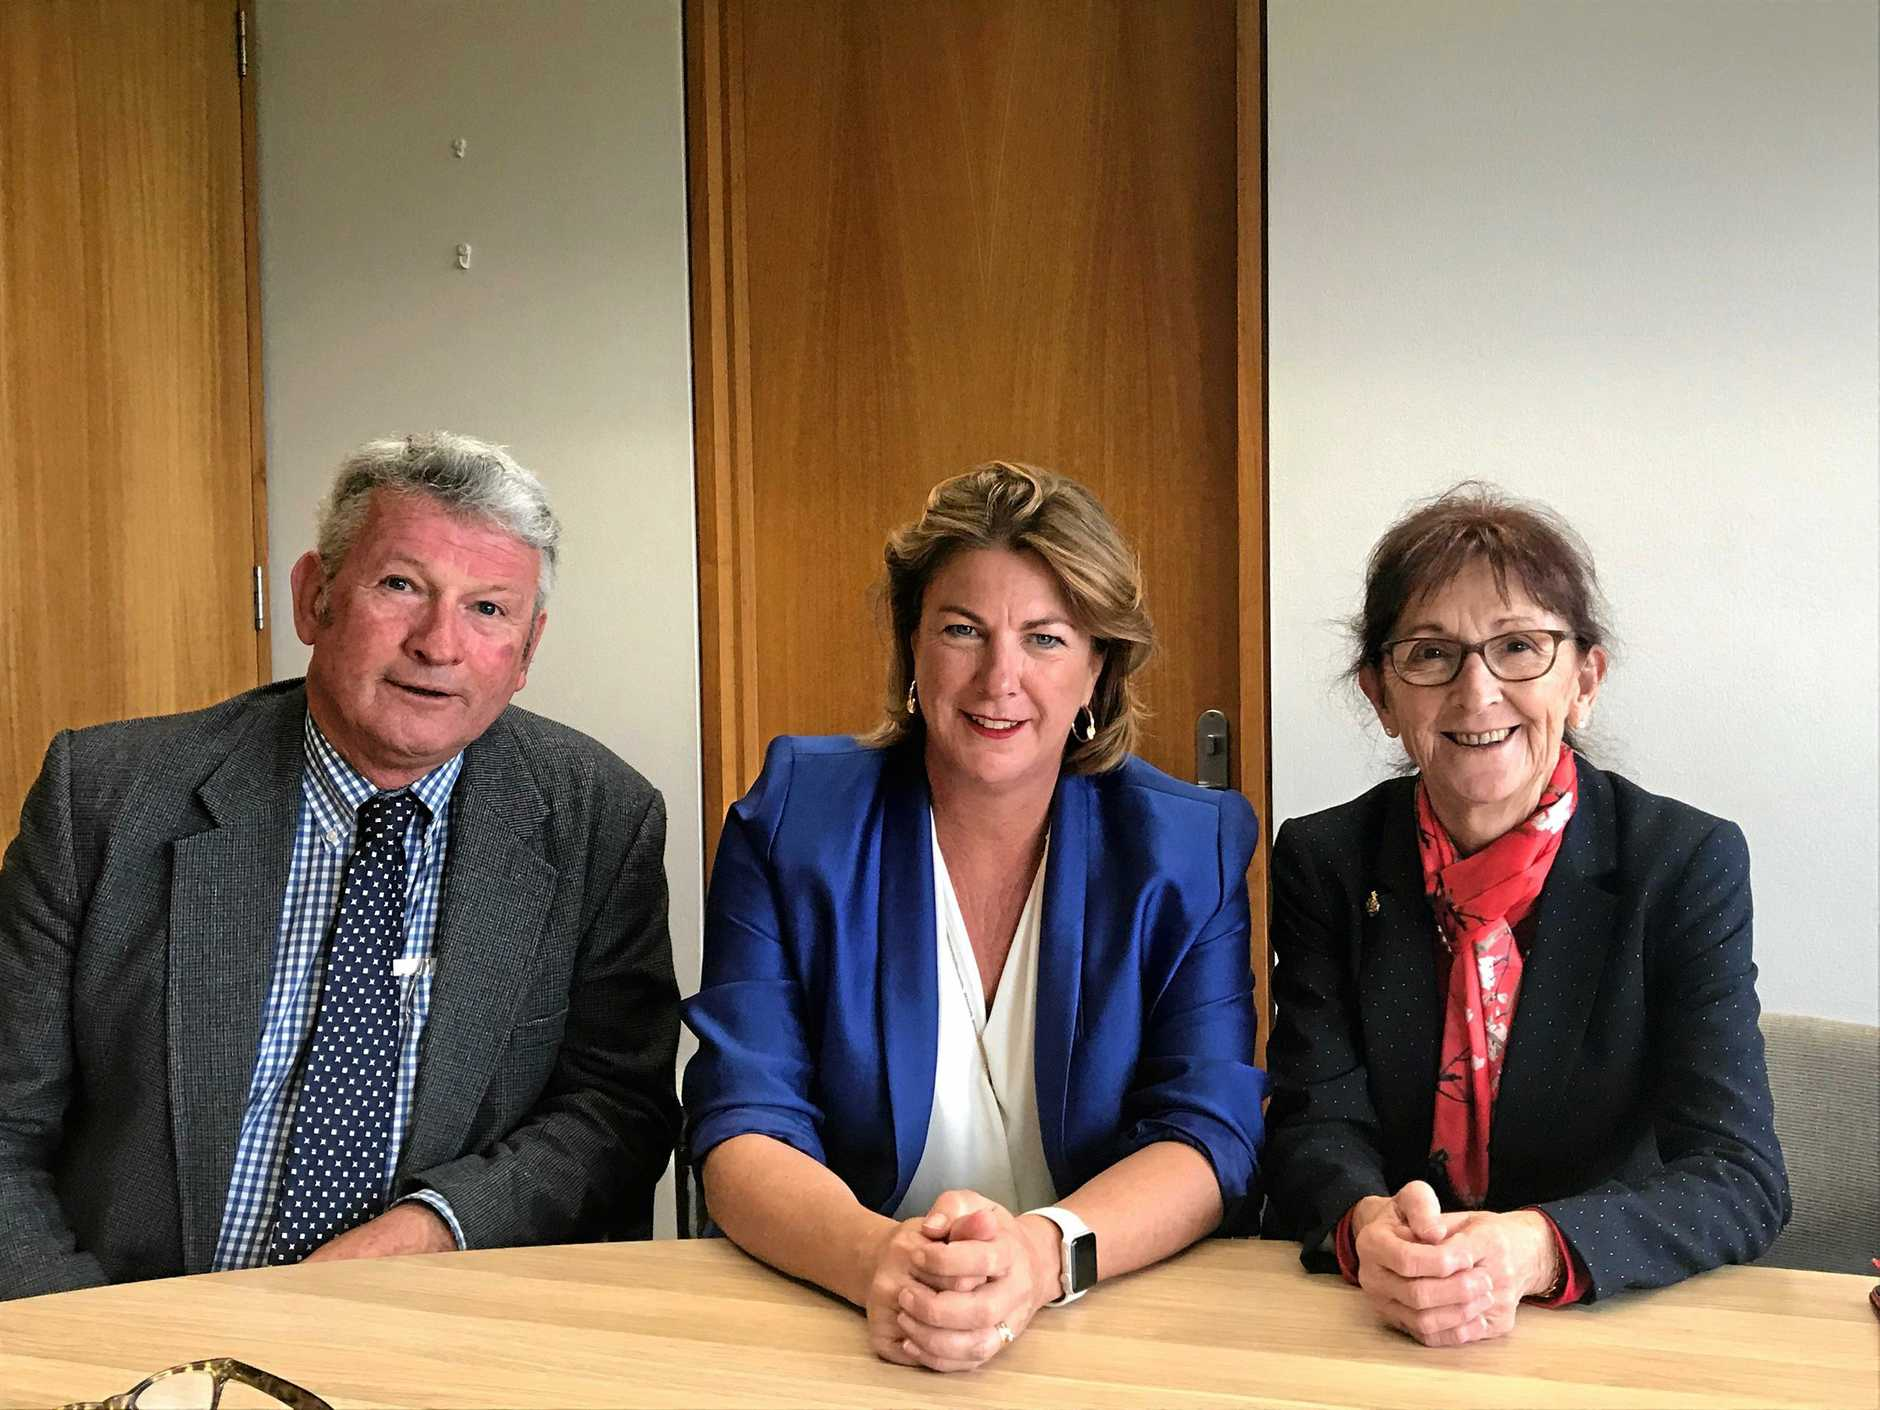 WATER LOBBY: Tenterfield Shire Mayor Cr Peter Petty, NSW Water Minister Melinda Pavey and Lismore MP Janelle Saffin in Parliament House this week.